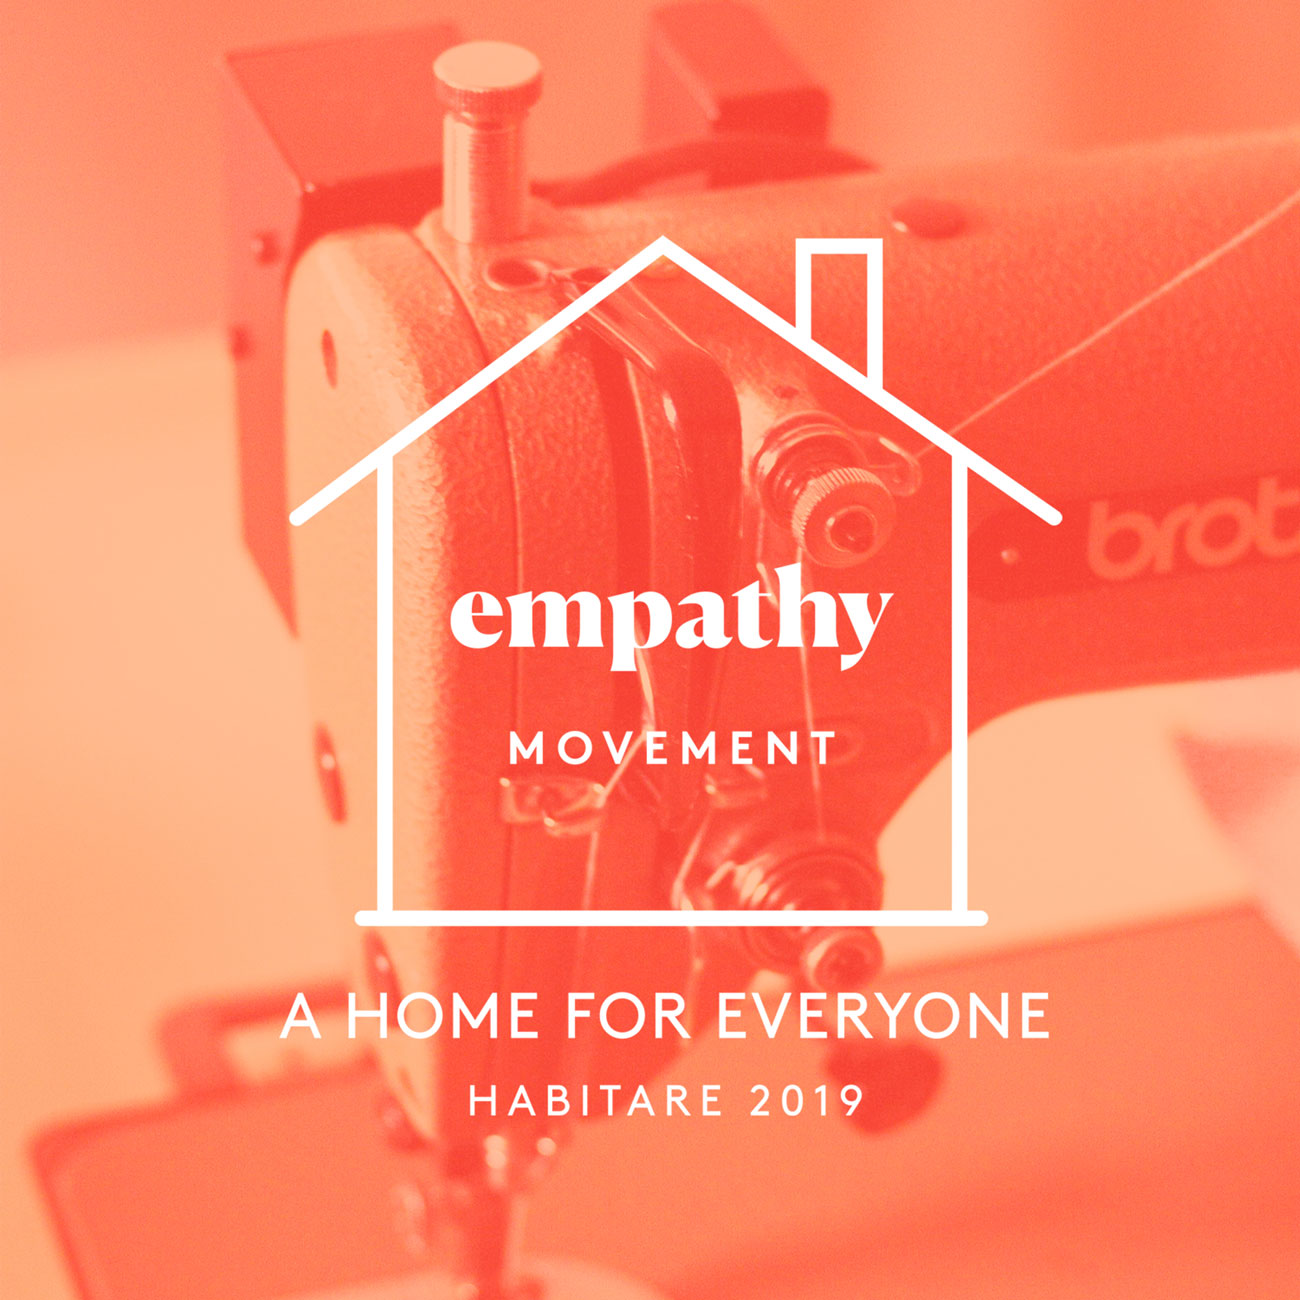 Empathy Movement A Home For Everyone Habitare 2019